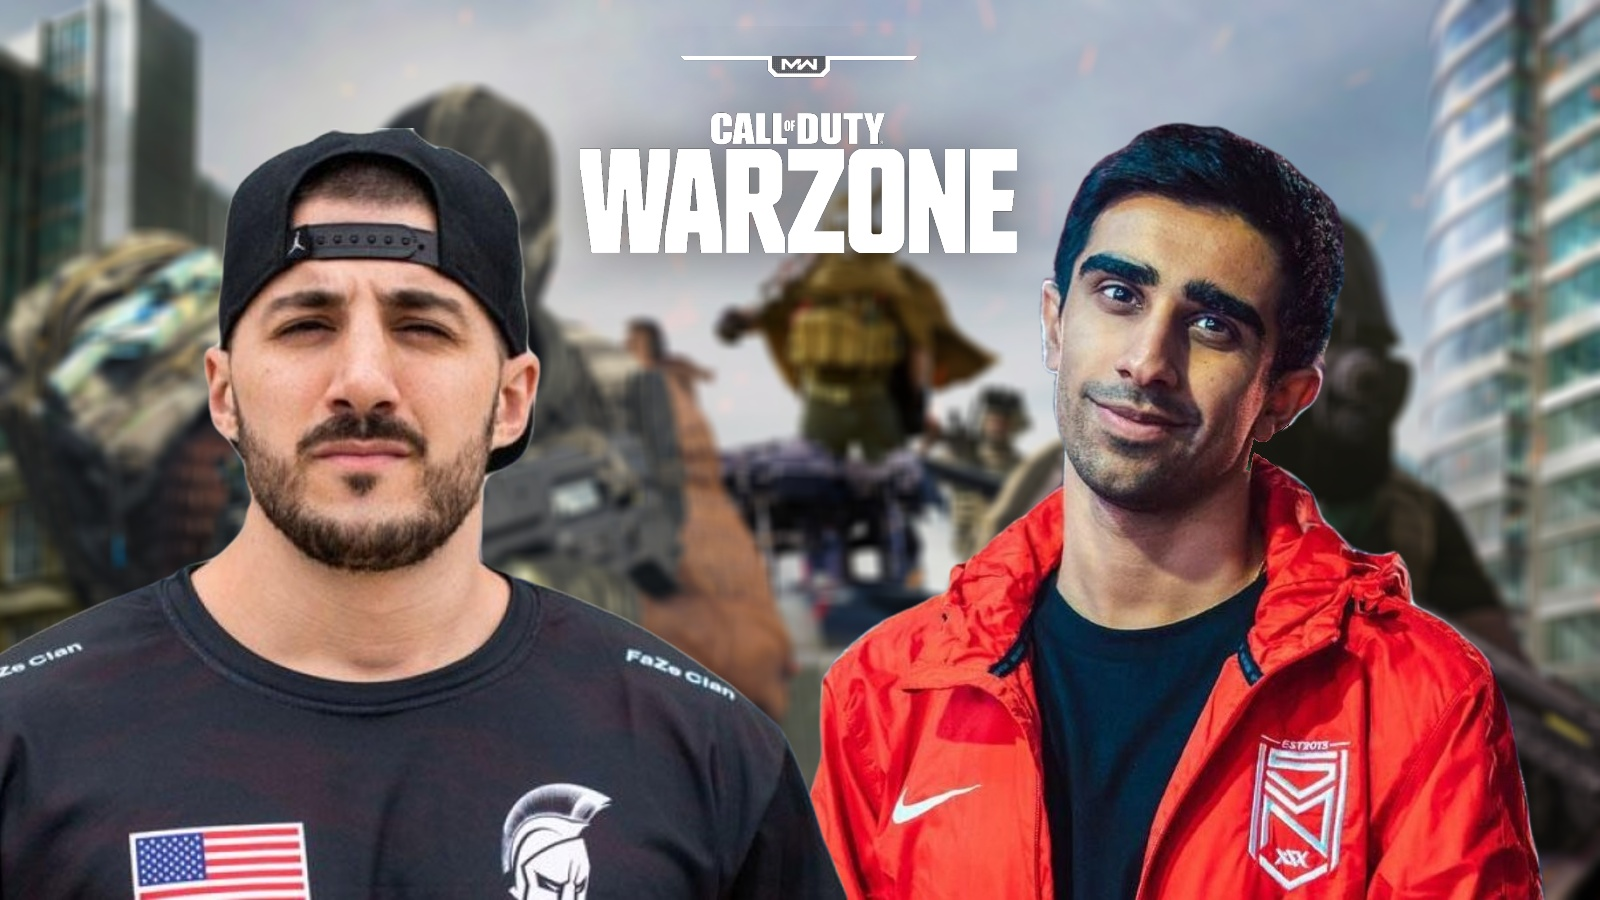 Nickmercs and Vikkstar Warzone